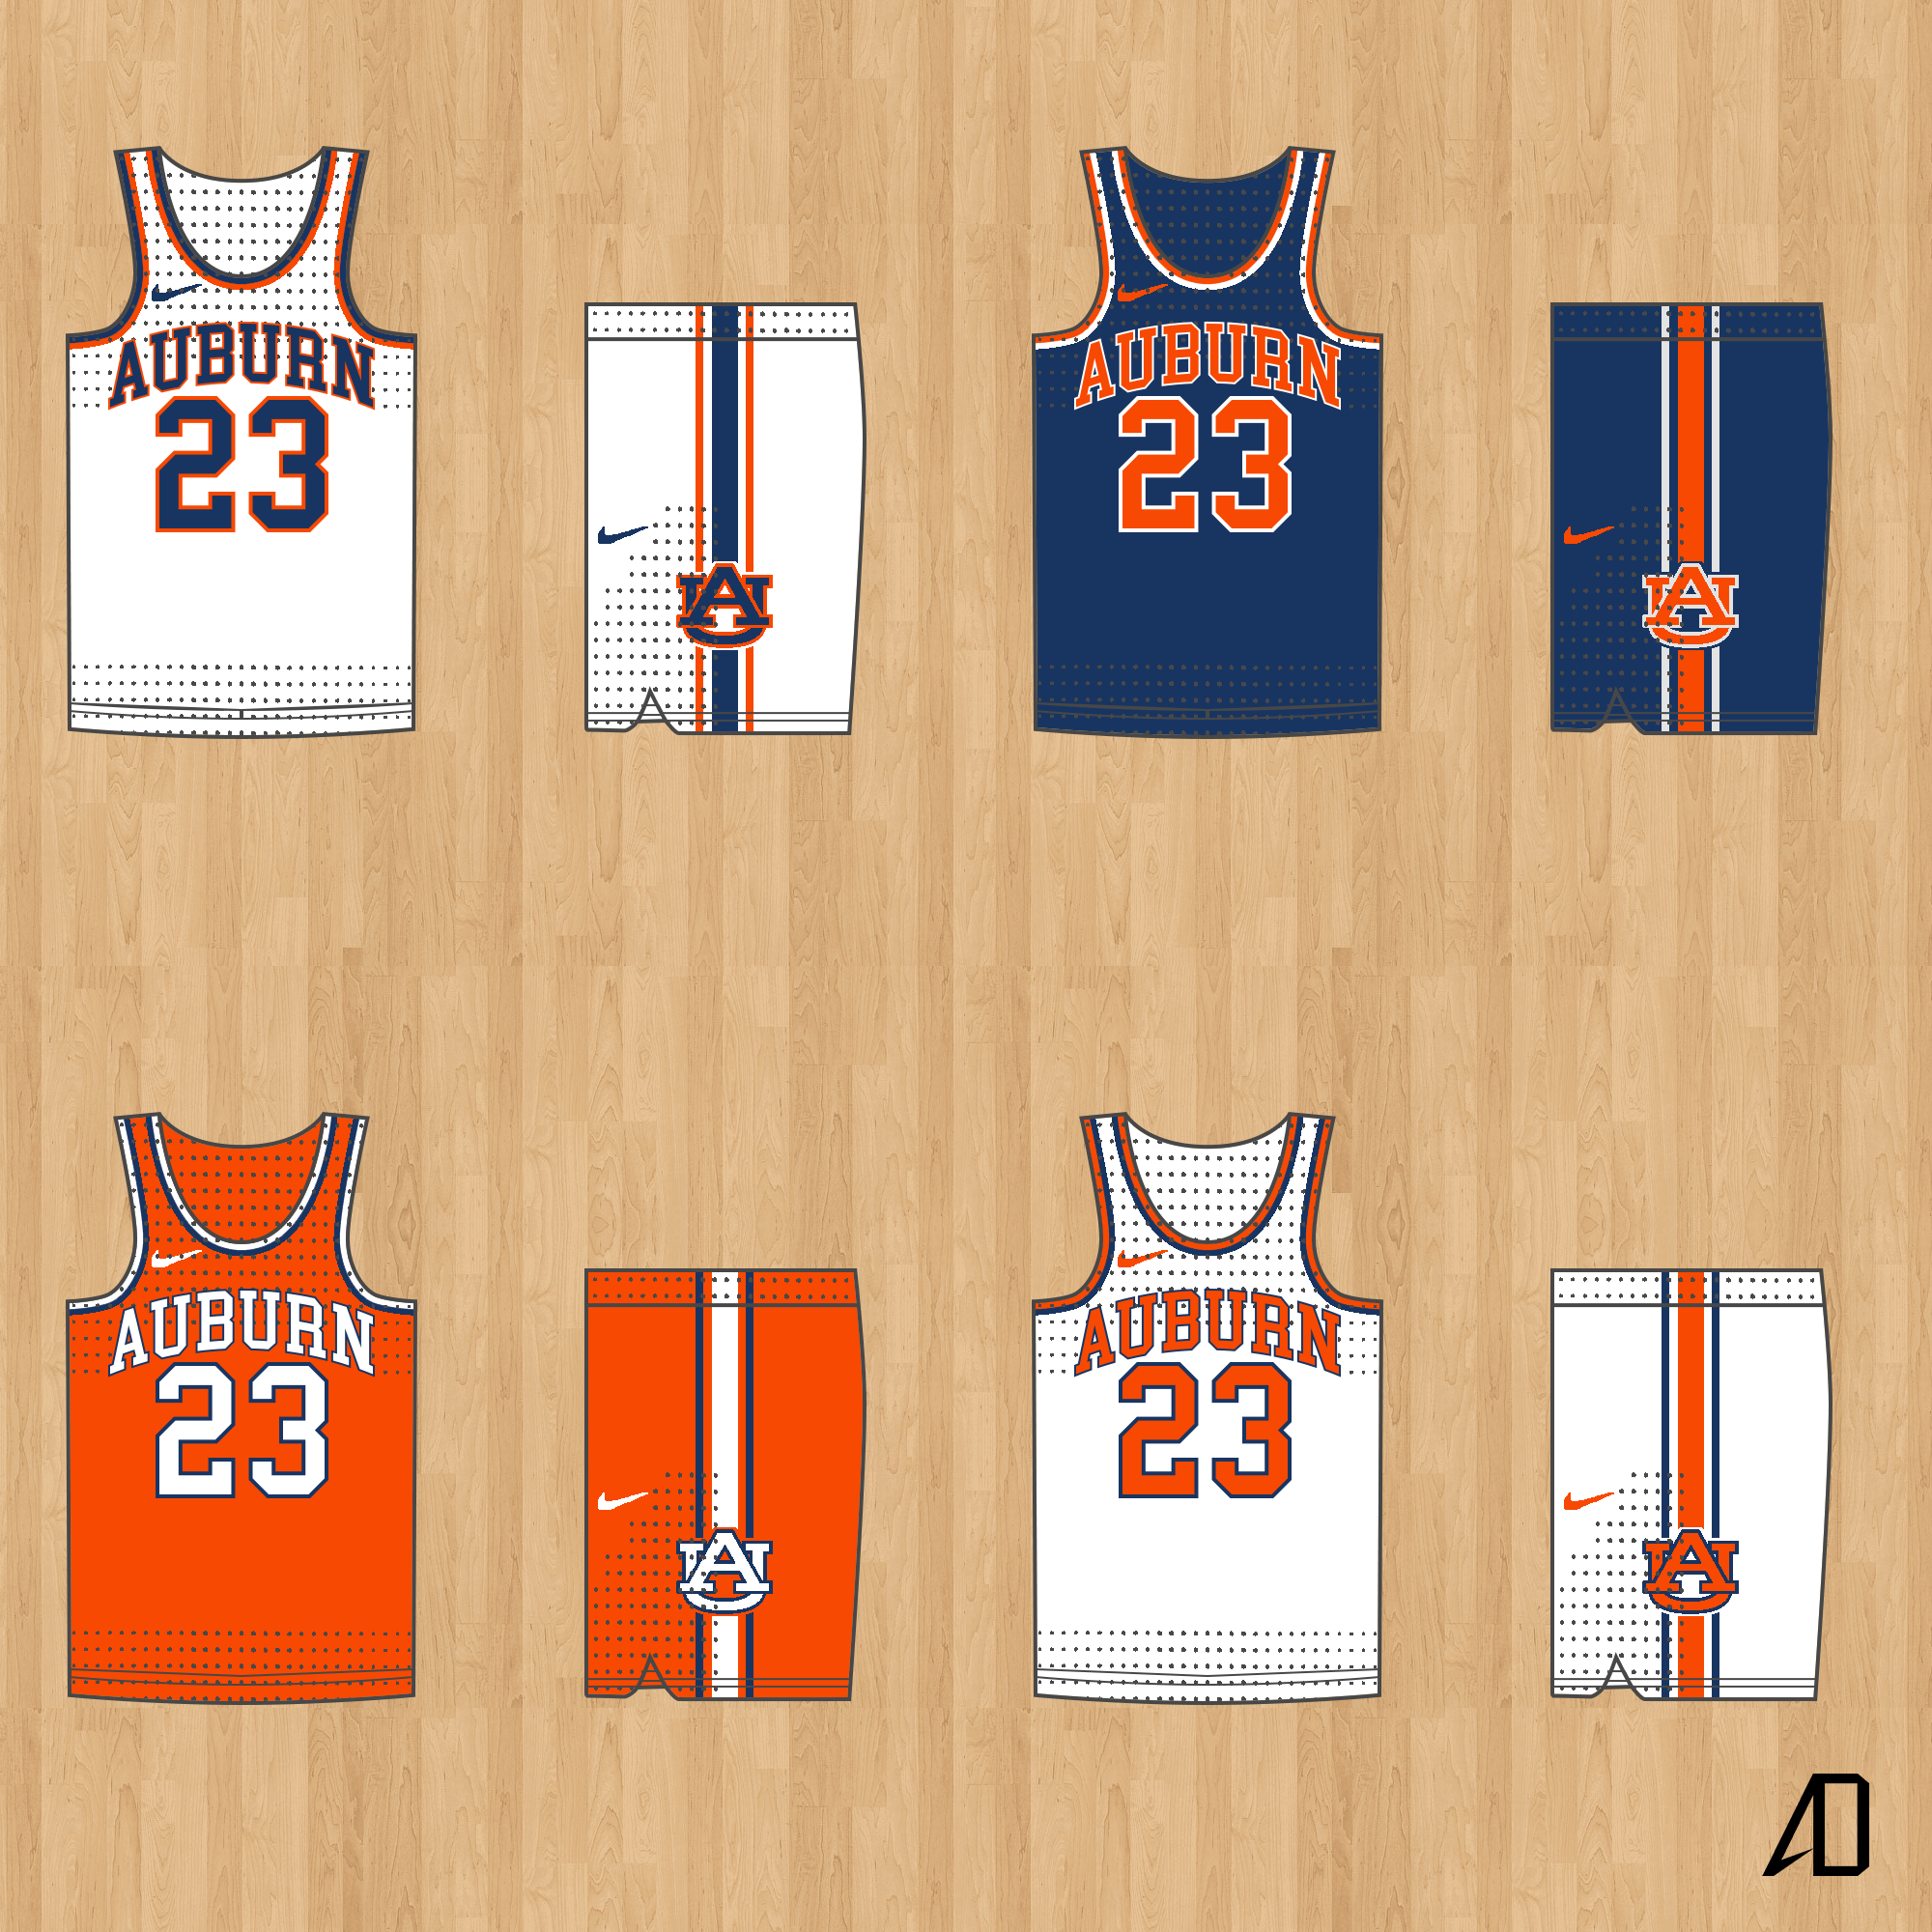 72d7cb590f3 College Basketball Concepts by Nike - Concepts - Chris Creamer's ...